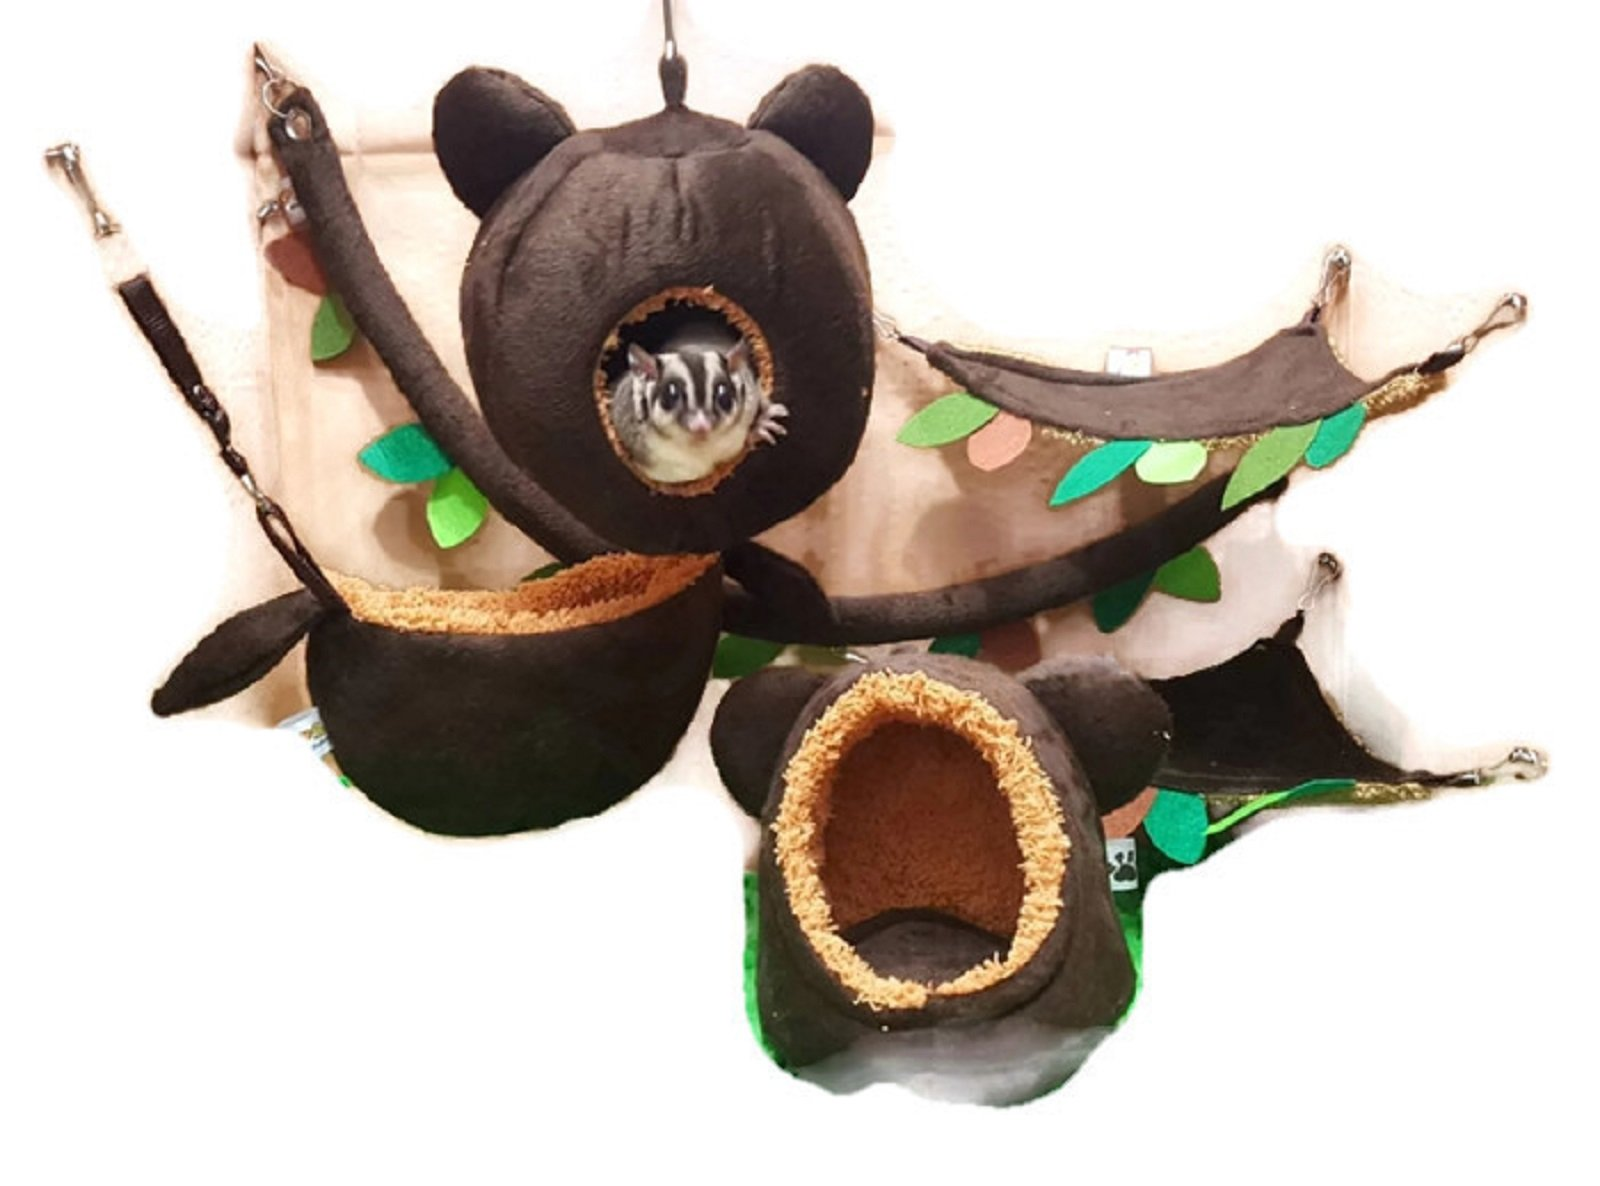 New! Made in Thailand 6 Pieces Cute KPS Jungle Bear Style Sugar Glider Hamster Squirrel Chinchillas Small Pet Cage Set Dark Brown Forest Bear Pattern Get Free 1 Small Pet Treats Polar Bear's Republic